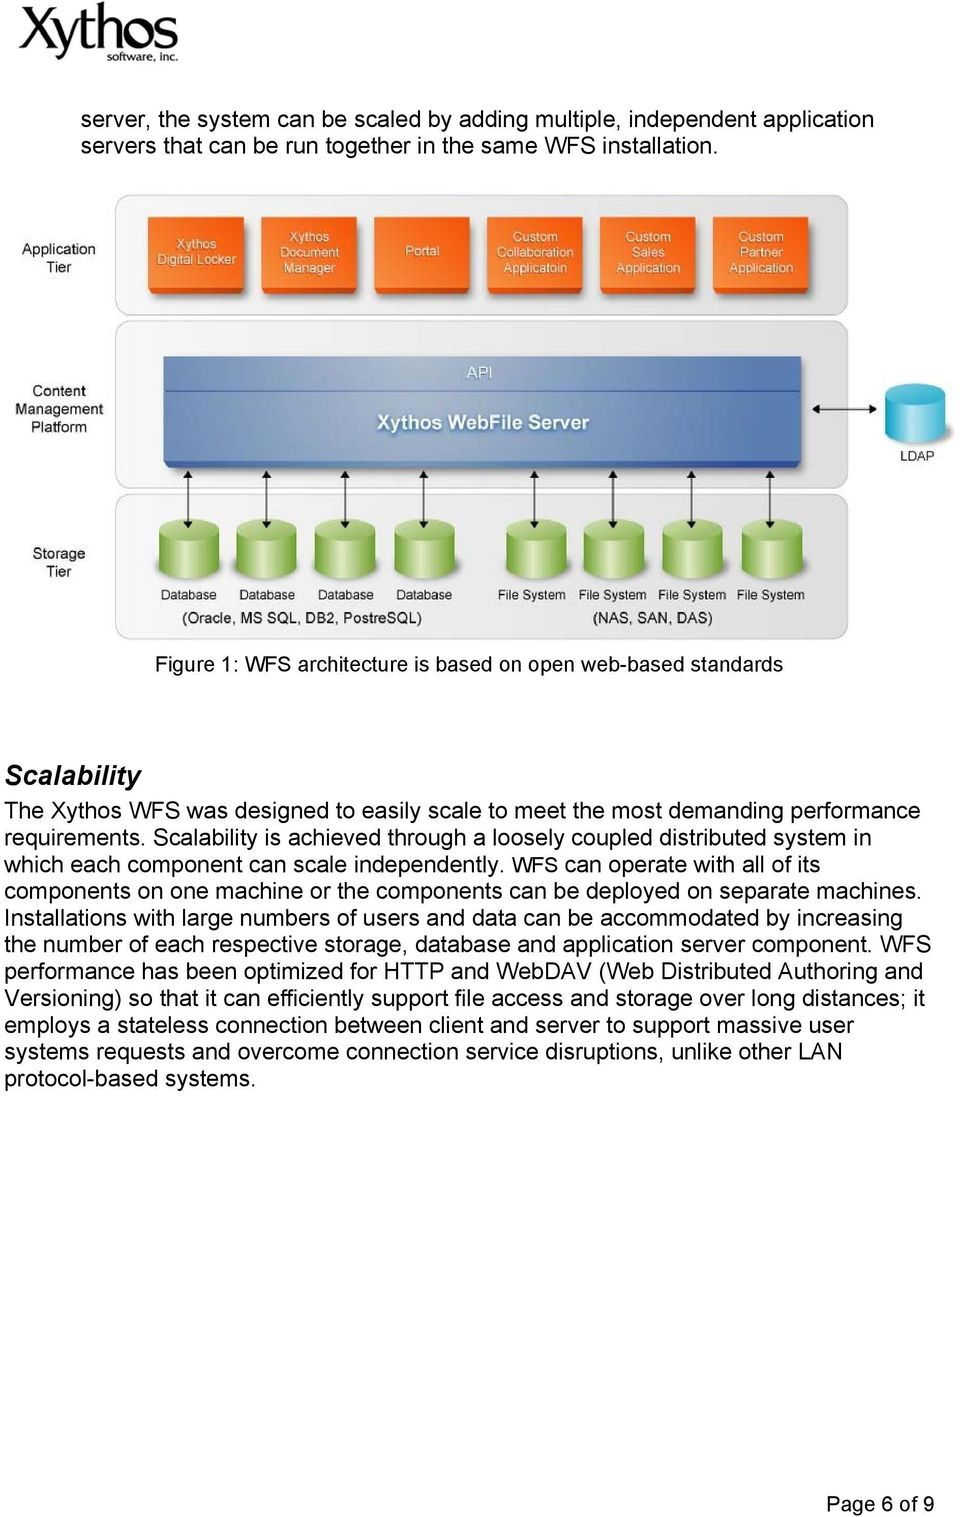 Scalability is achieved through a loosely coupled distributed system in which each component can scale independently.